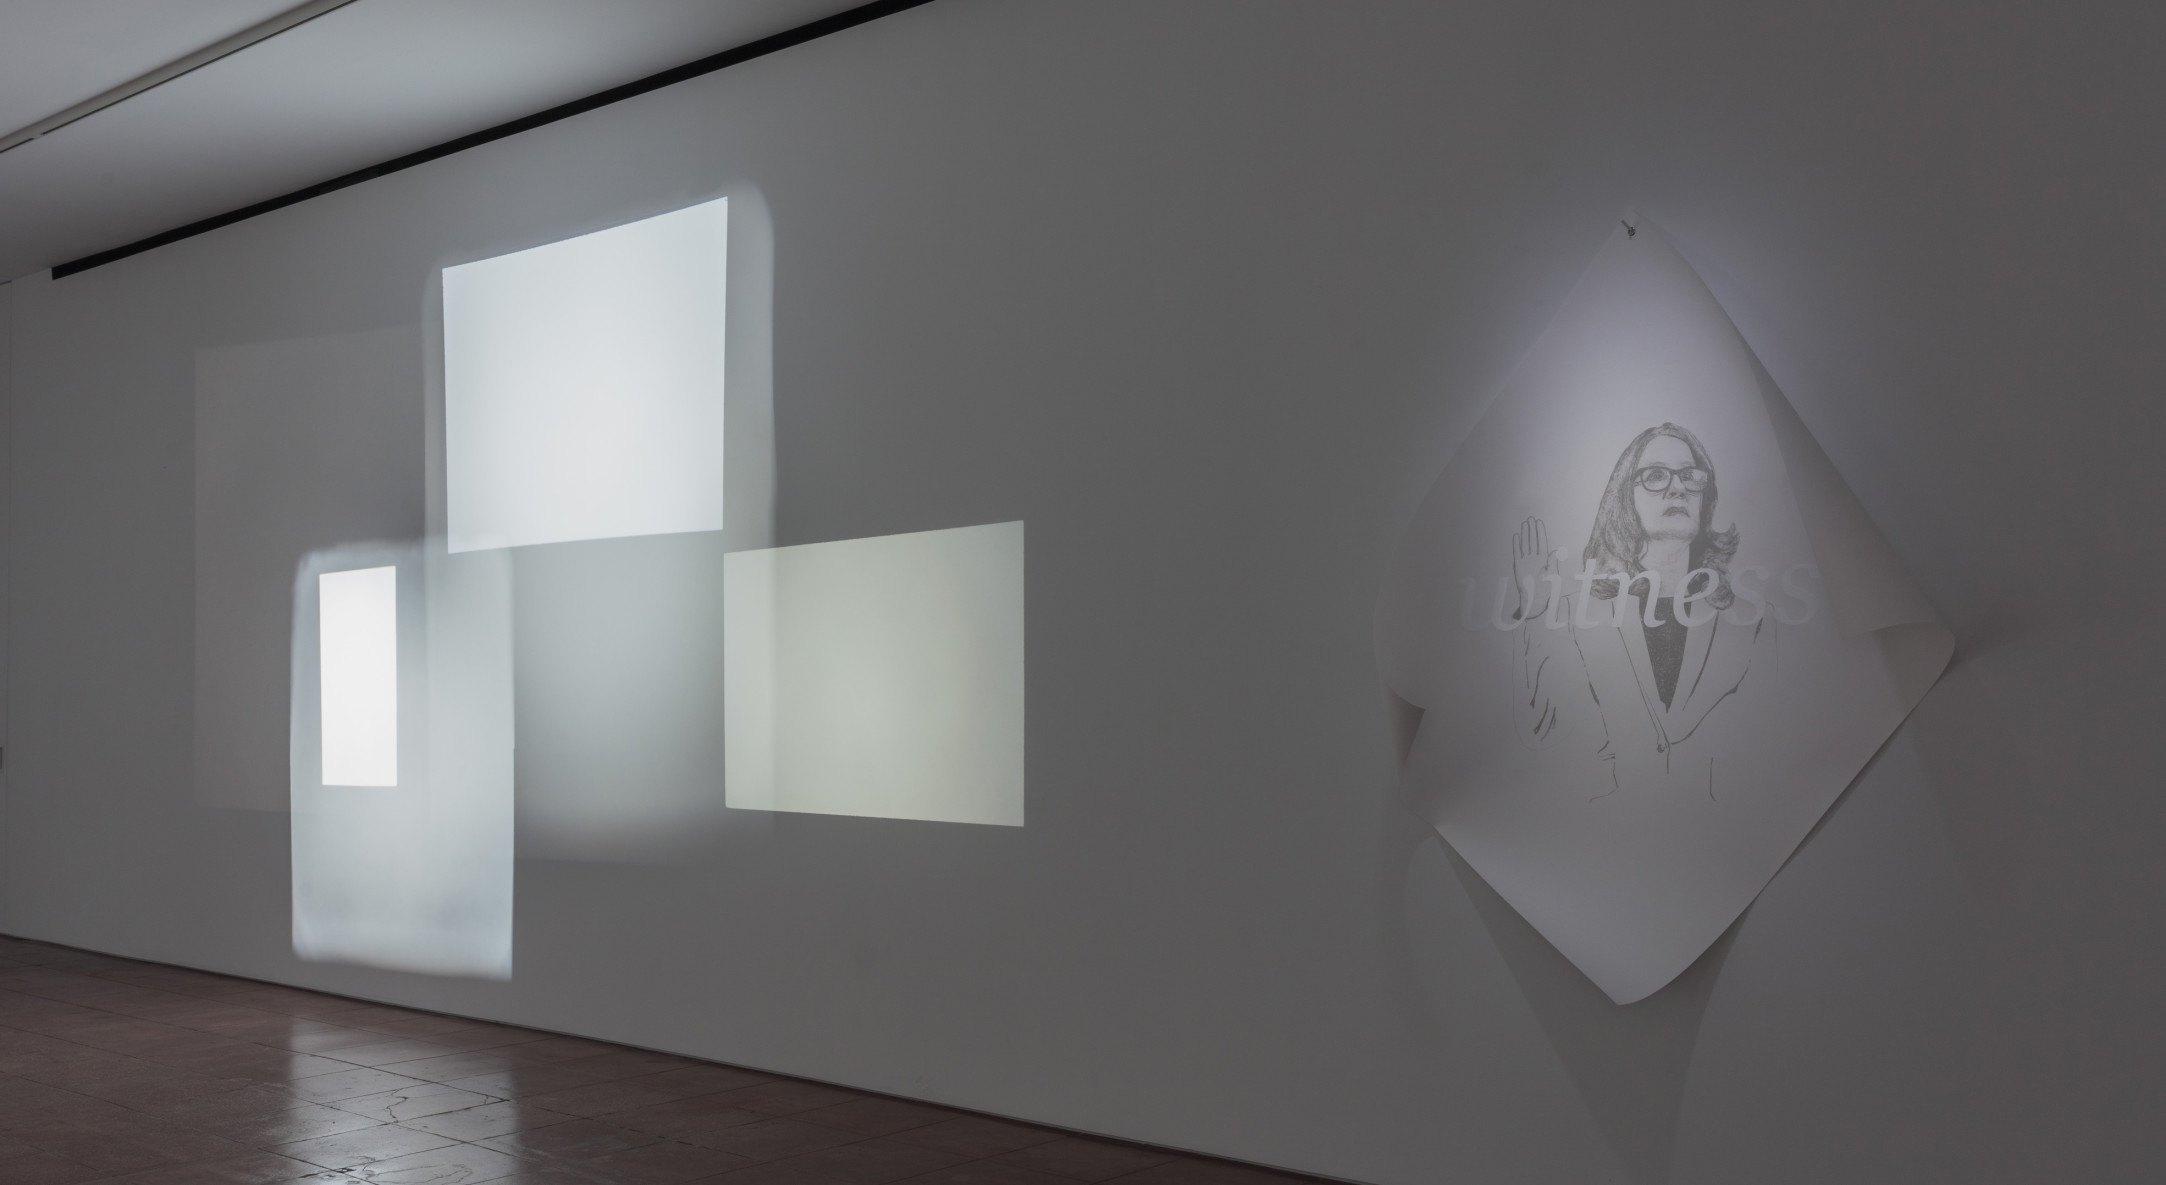 Installation view of Andrea Geyer, On this day, at Hales New York